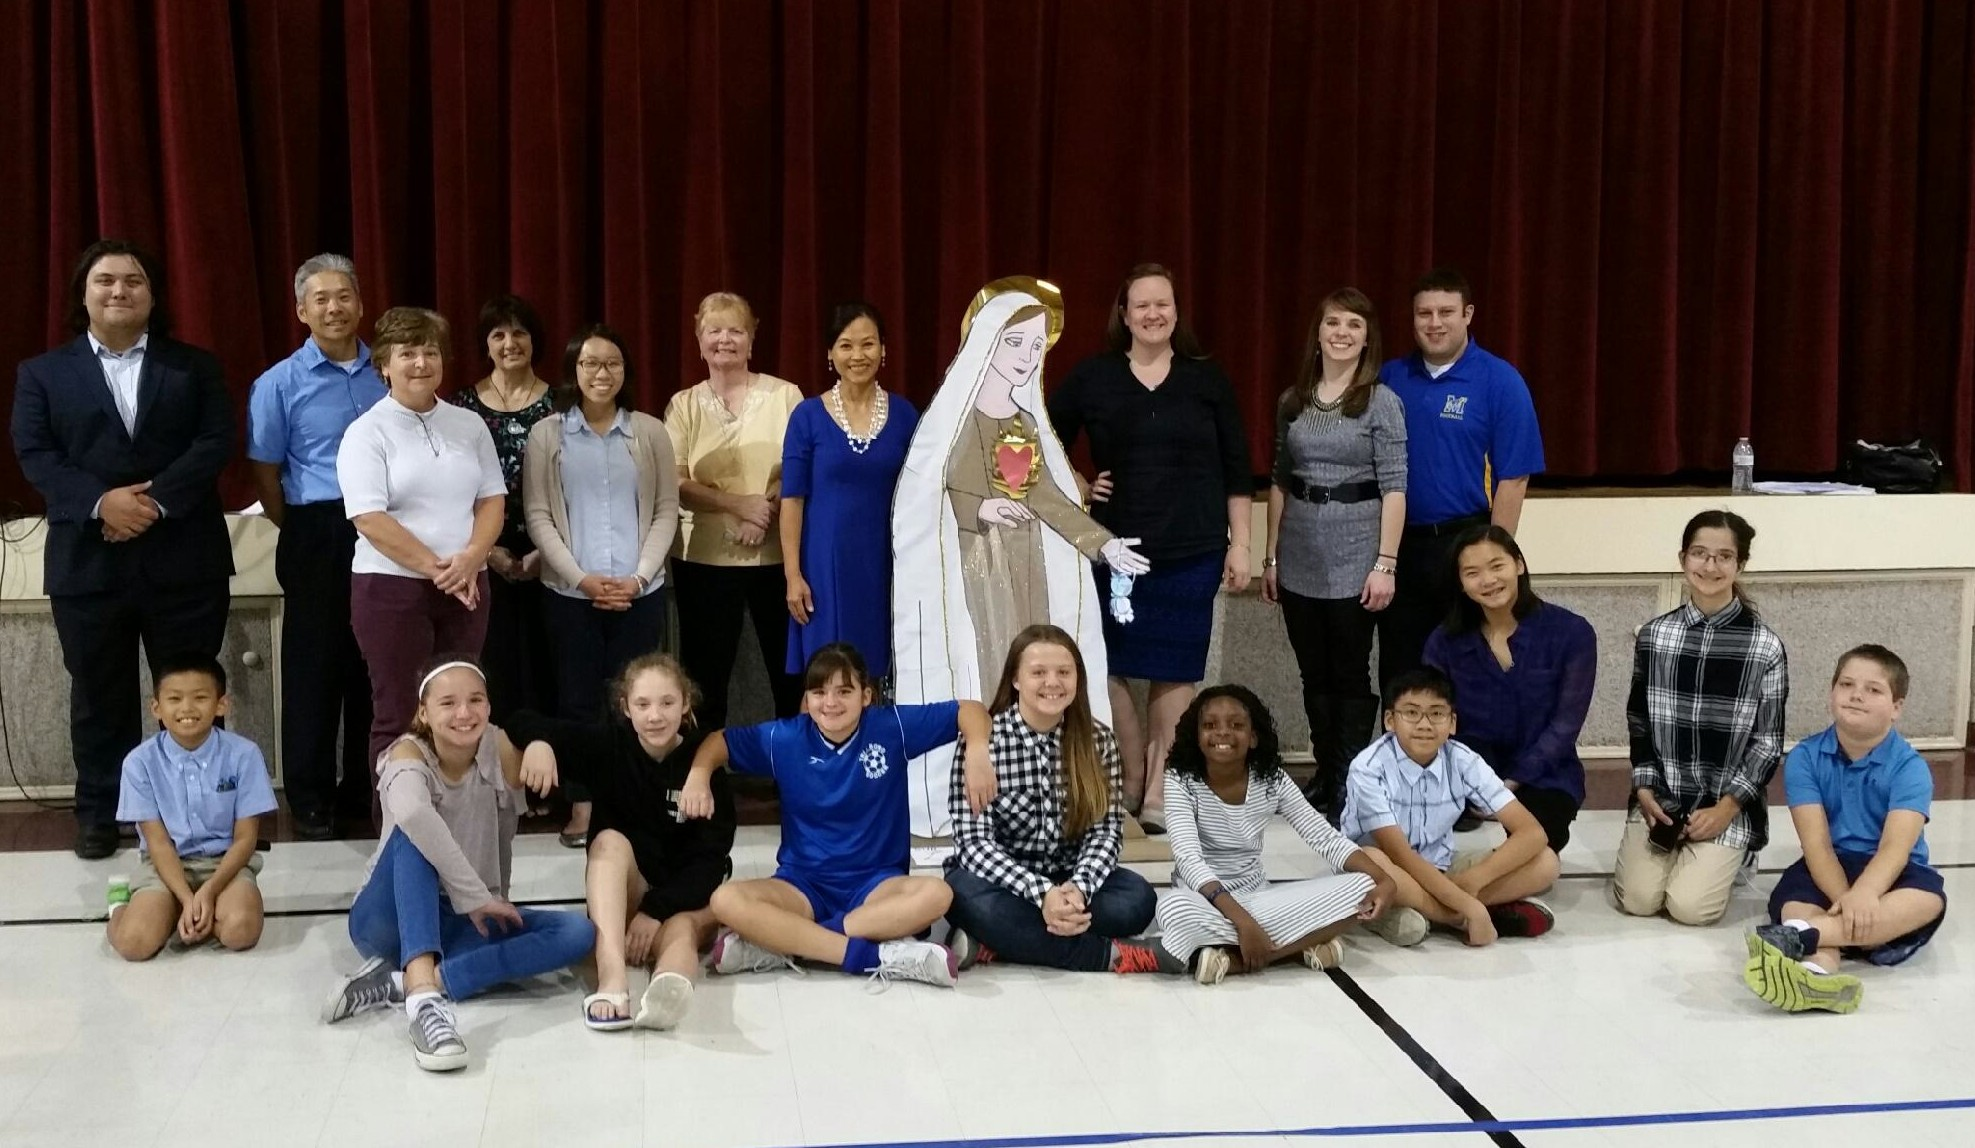 The St. Elizabeth community came together to celebrate the 100 year anniversary of Our Lady's appearance at Fatima in October 2017